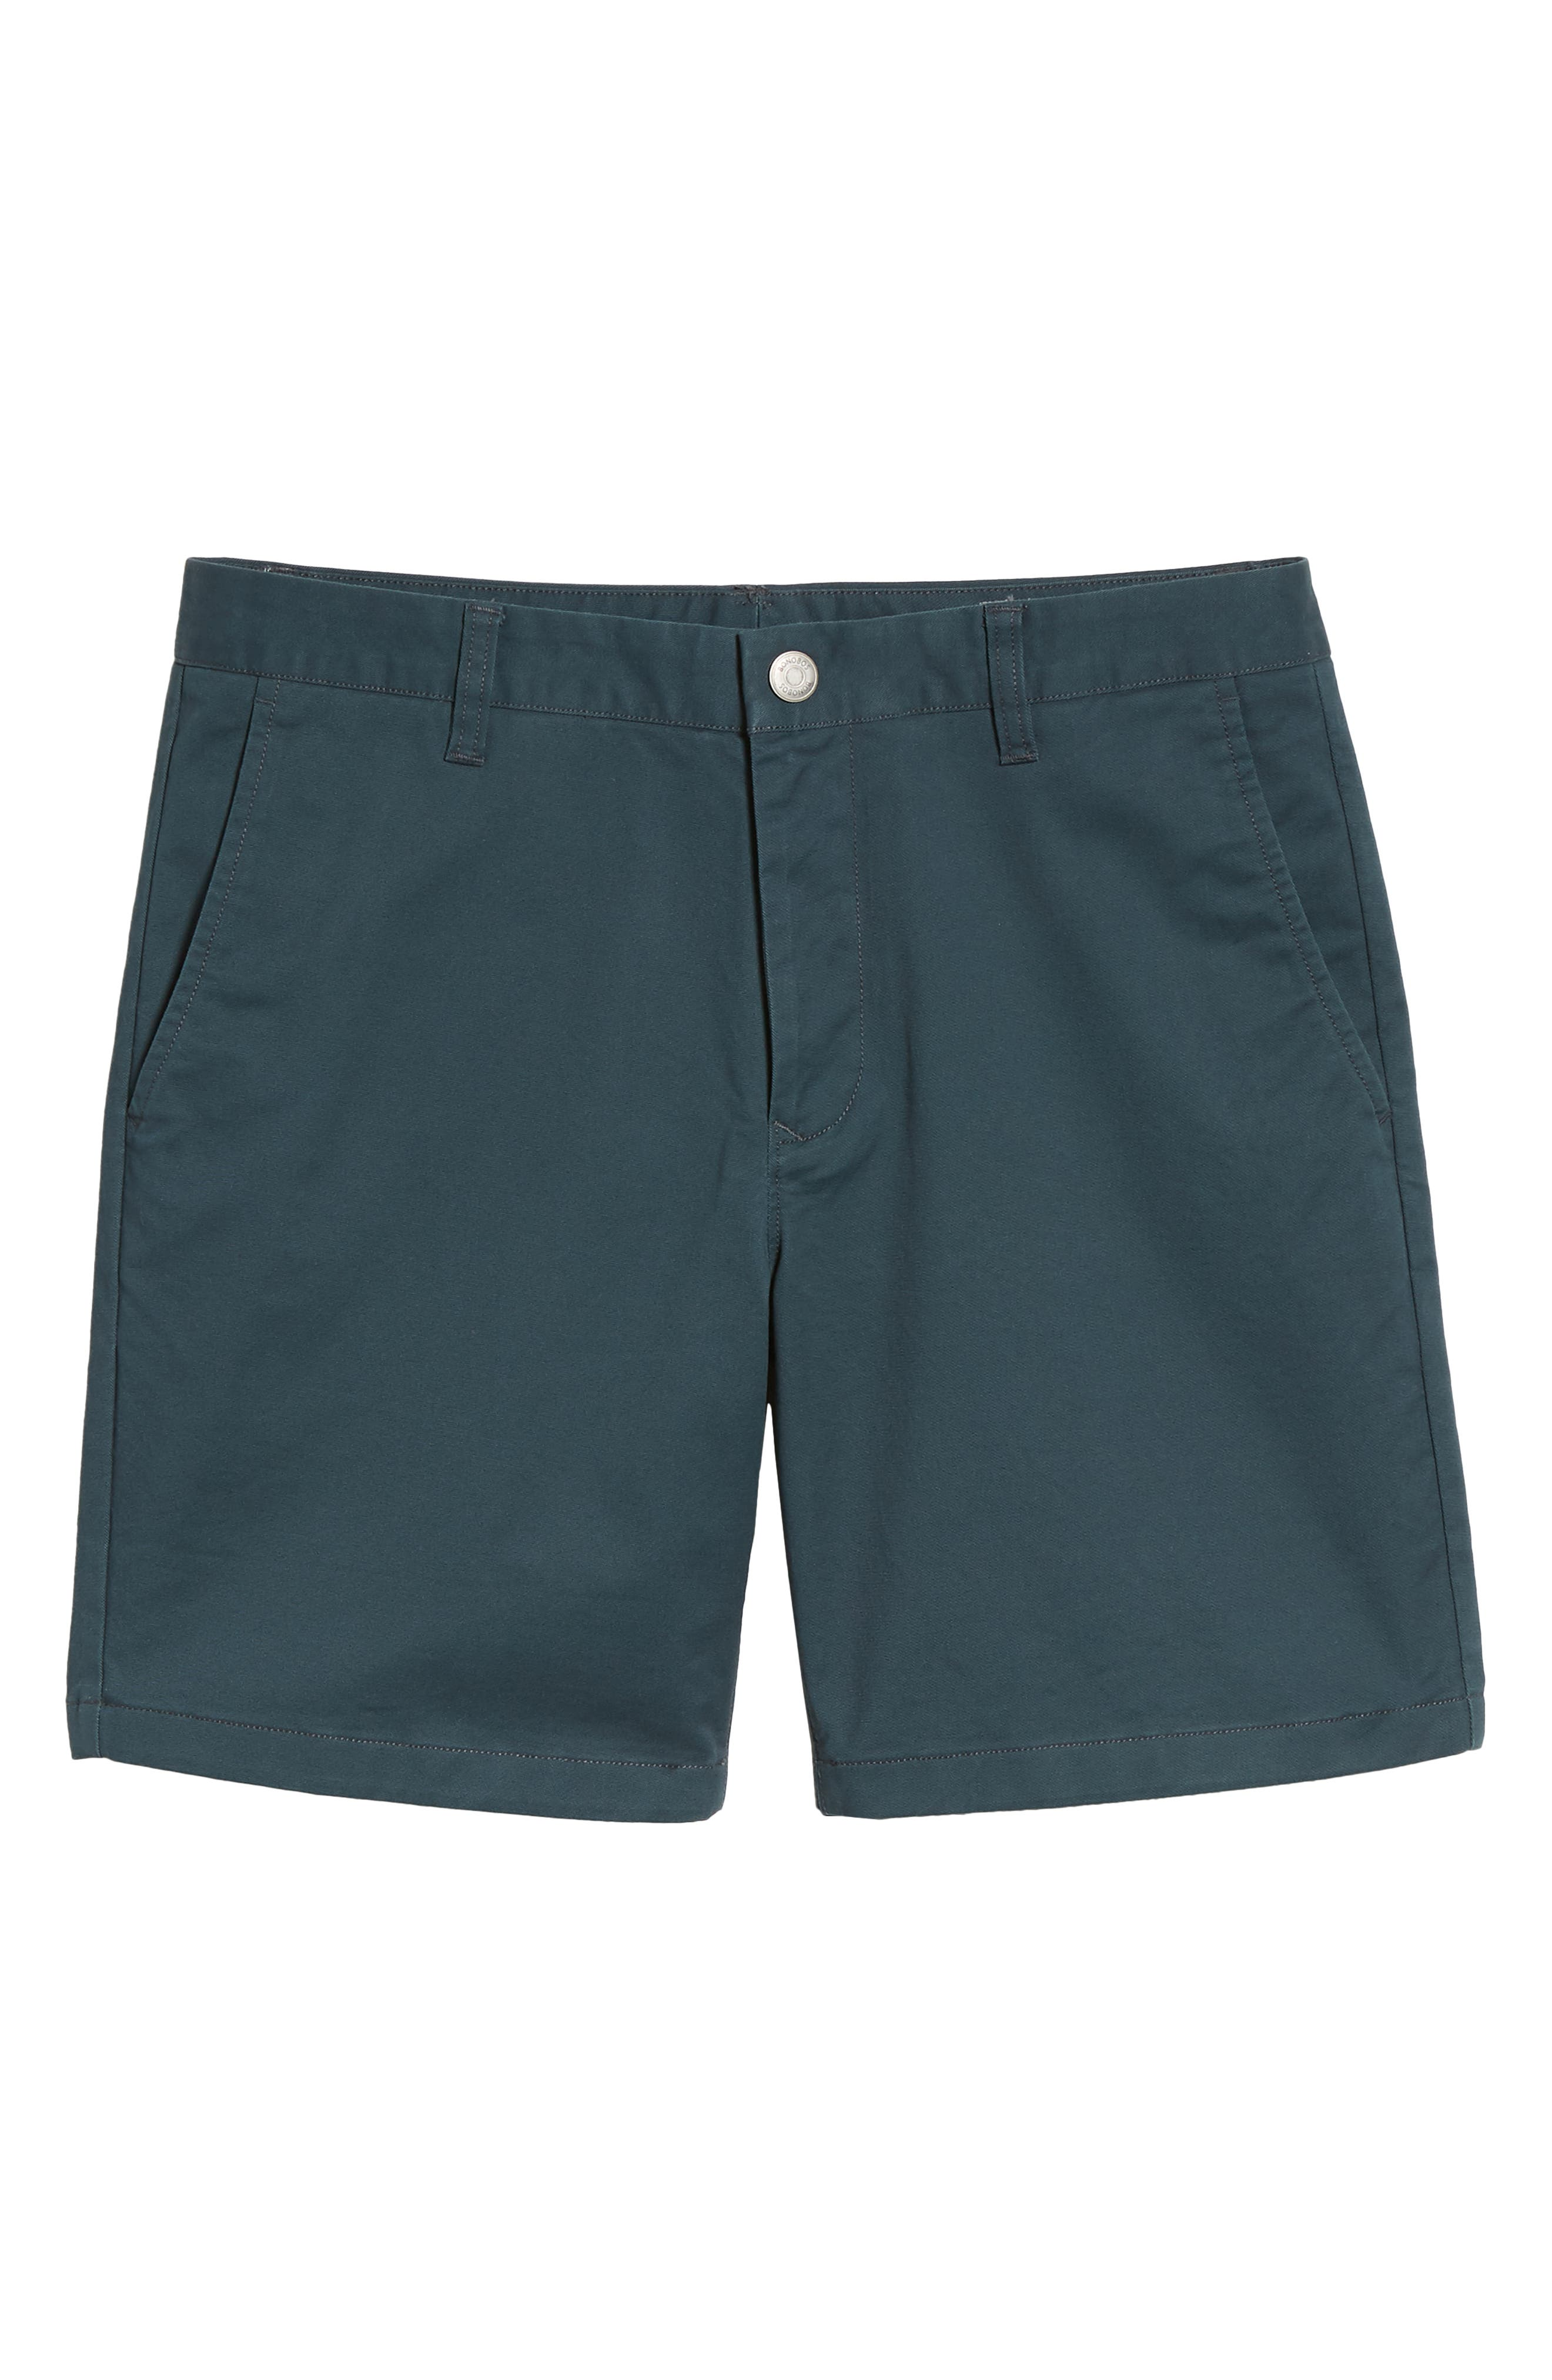 Stretch Chino 7-Inch Shorts,                             Alternate thumbnail 69, color,